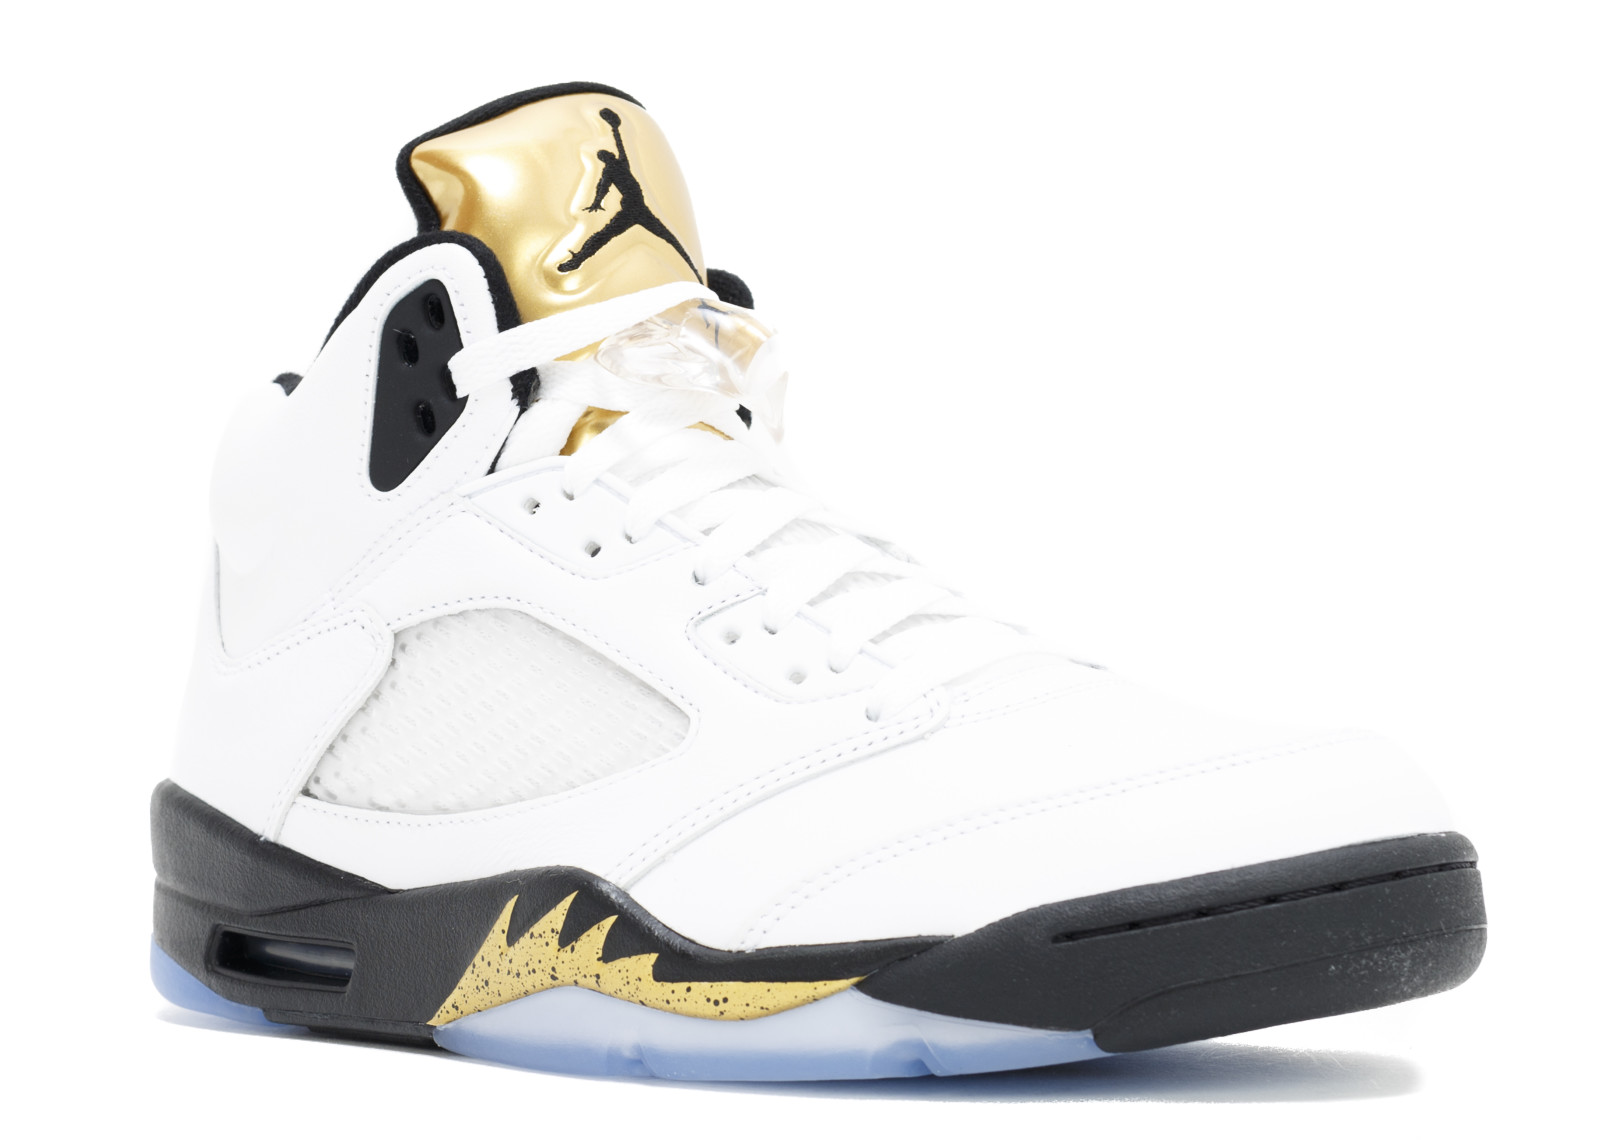 a0db8528b1daea Air Jordan - Men - Air Jordan 5 Retro  Olympic Gold  - 136027-133 - Size 13